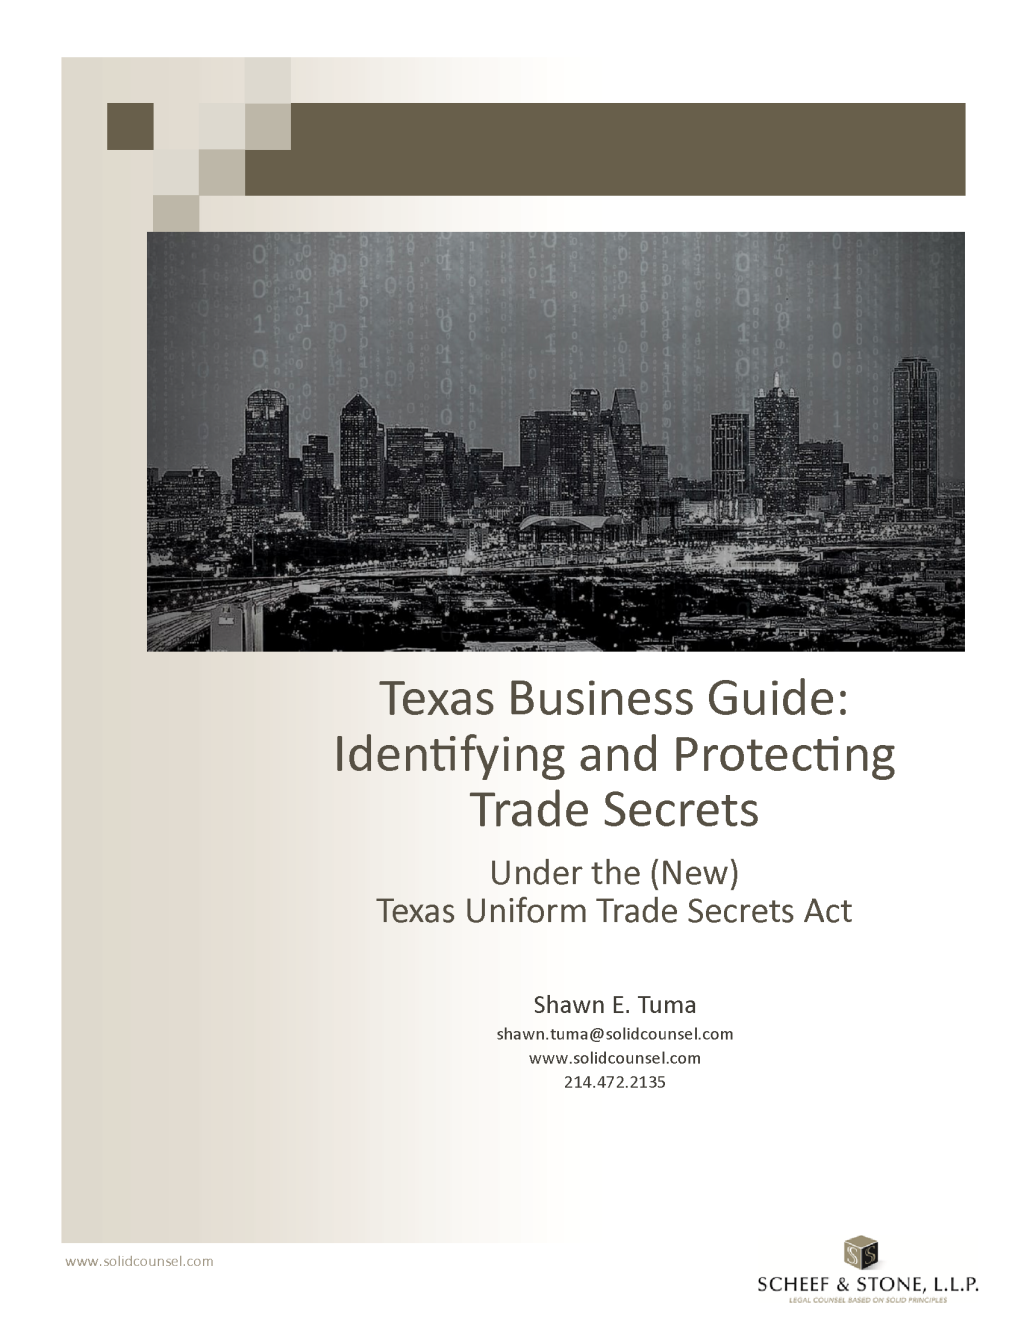 Texas Business Guide for Identifying and Protecting Trade Secrets - Cover